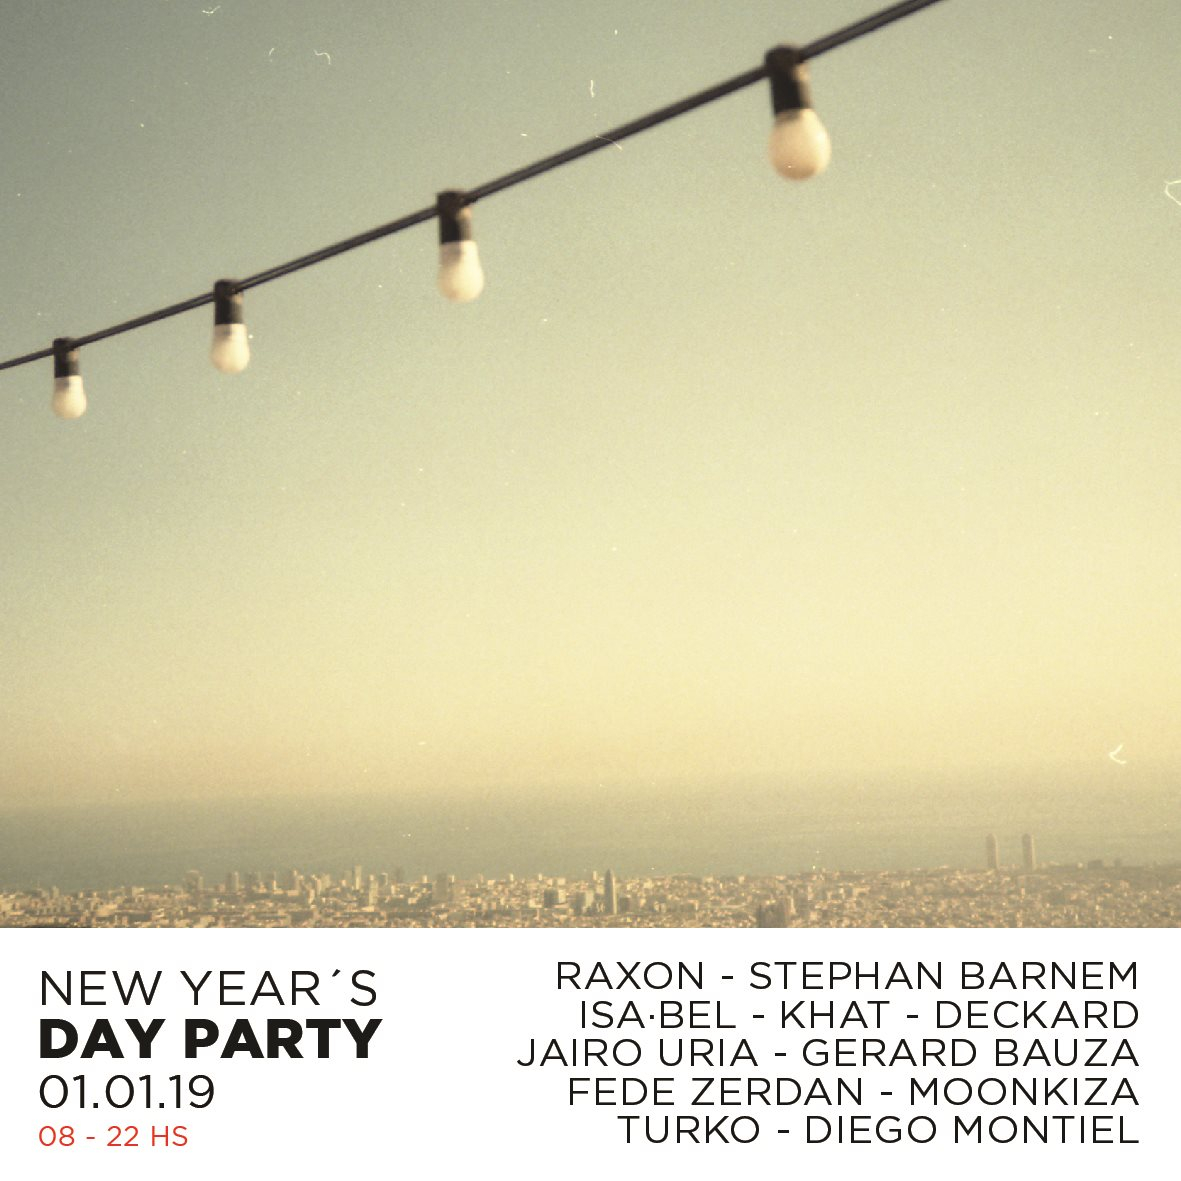 New Year's Day Party - Flyer back